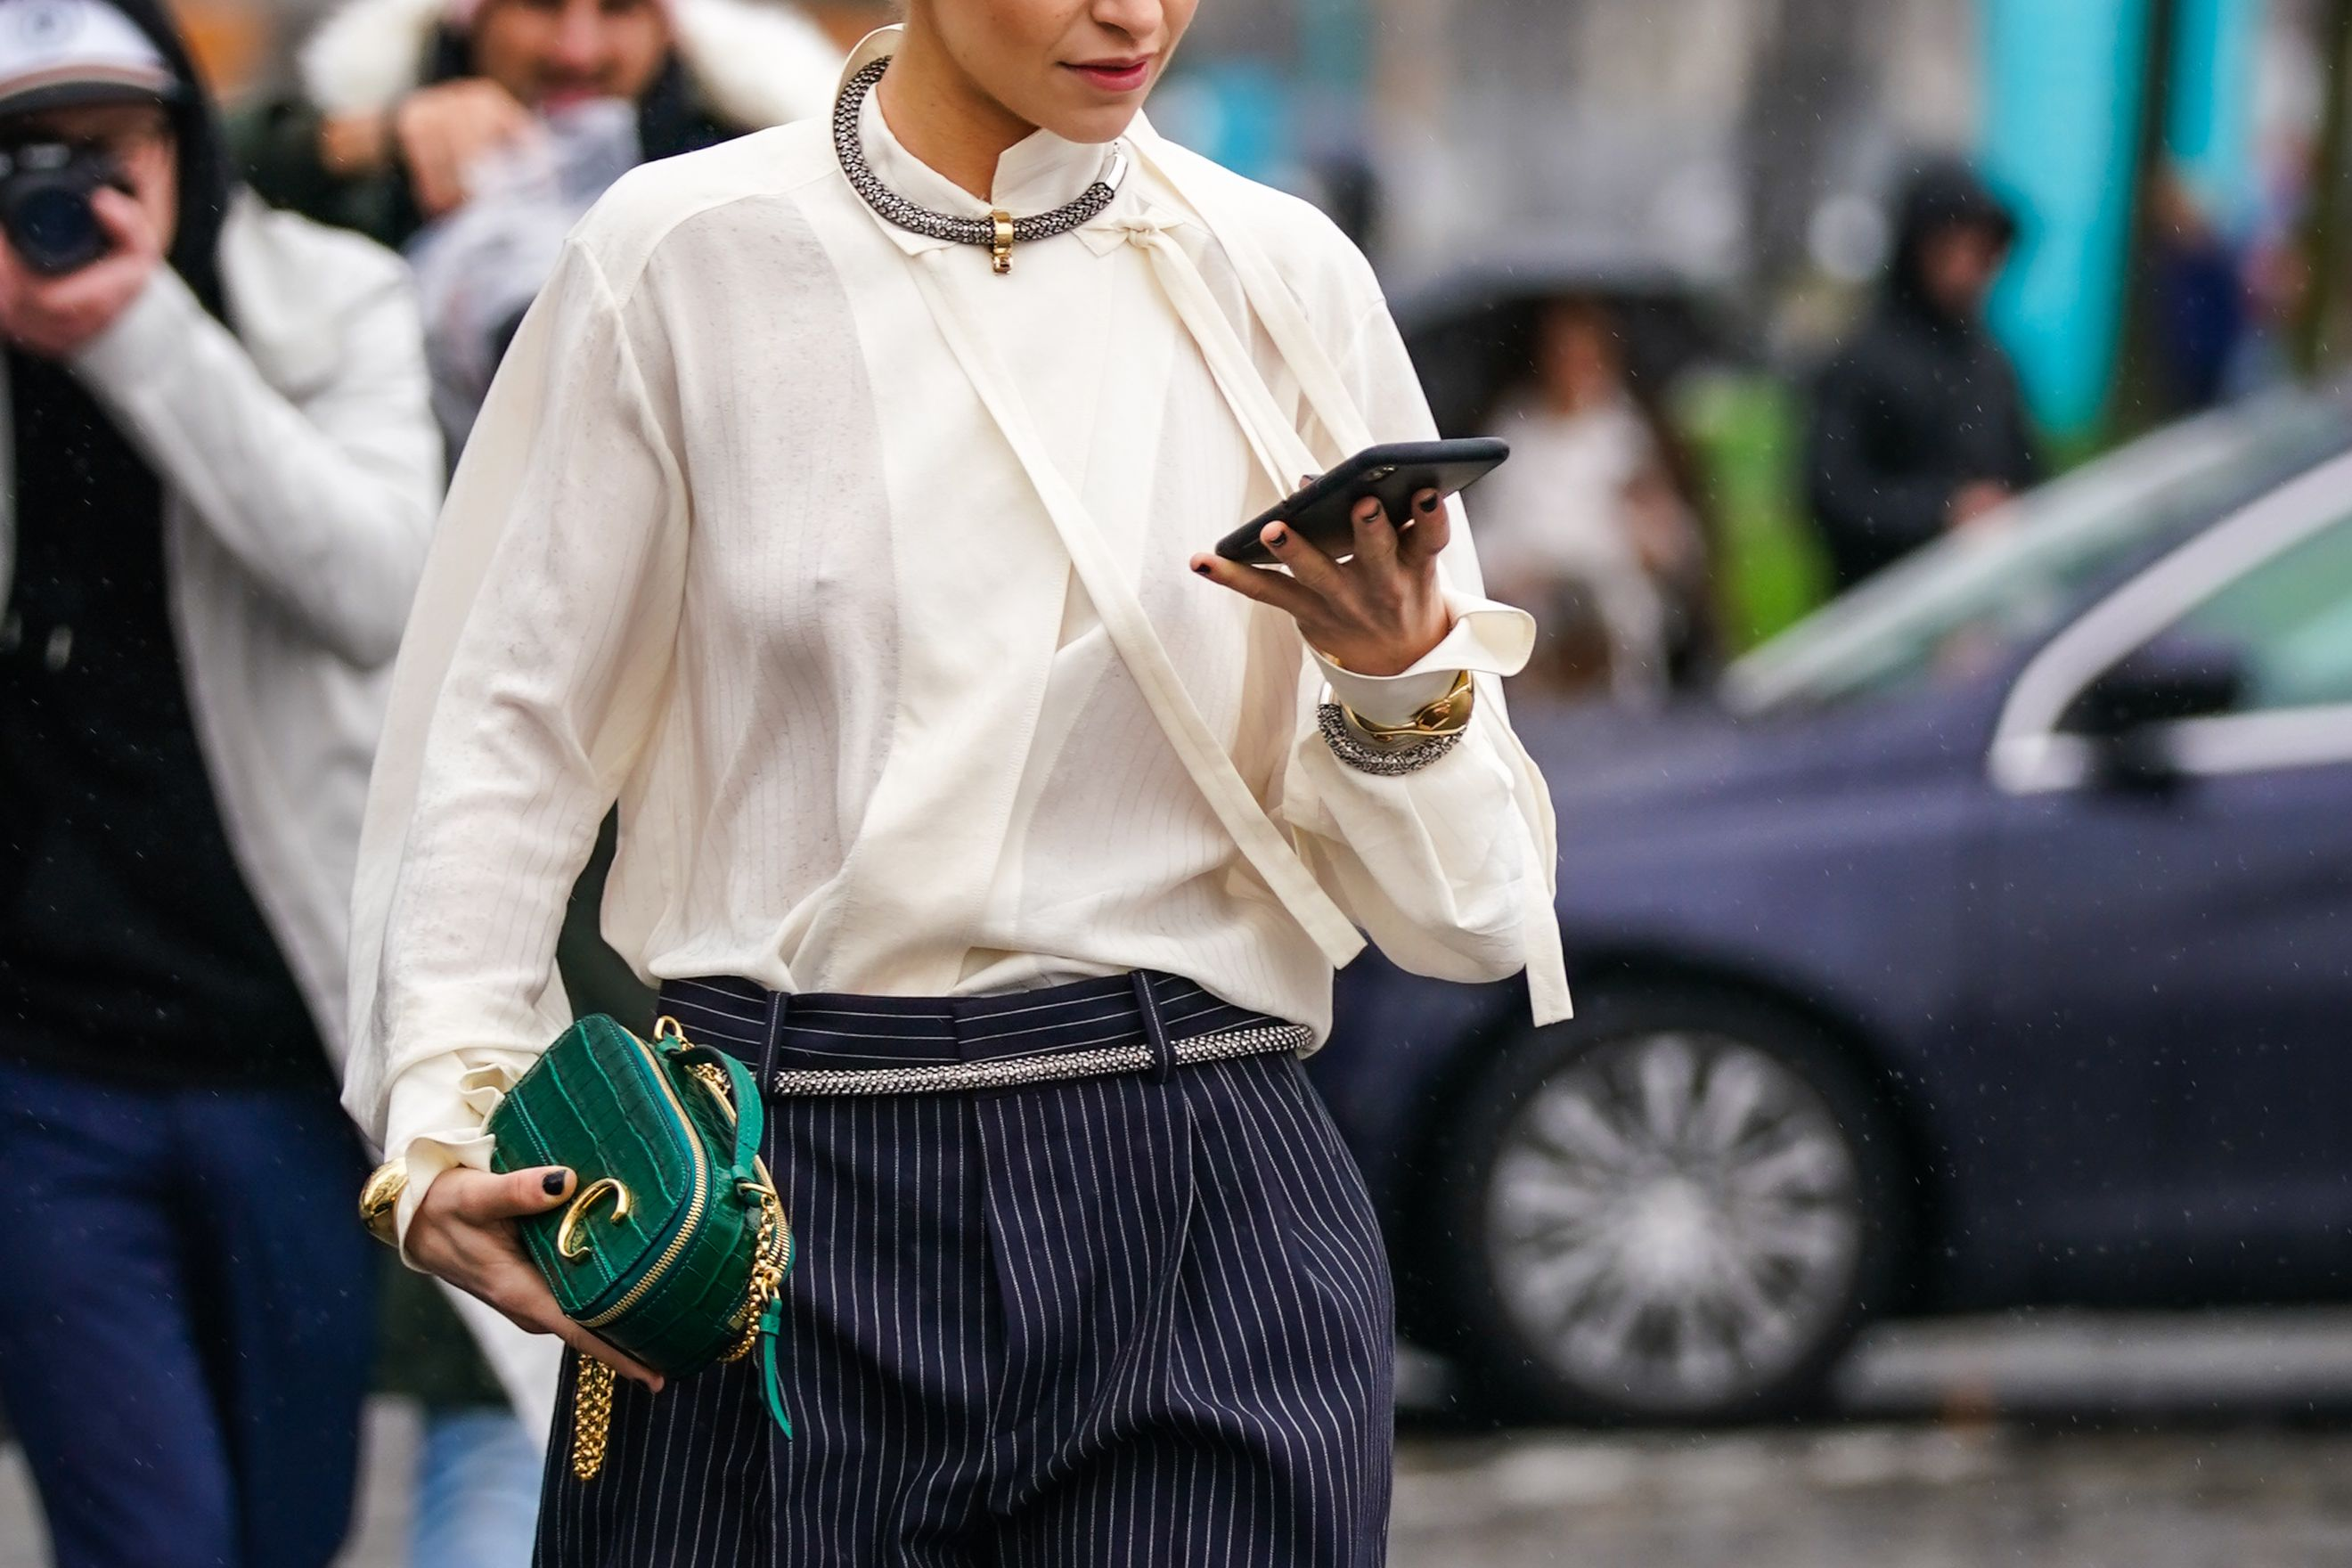 The 18 Best Fashion E-Commerce Sites to Shop Now